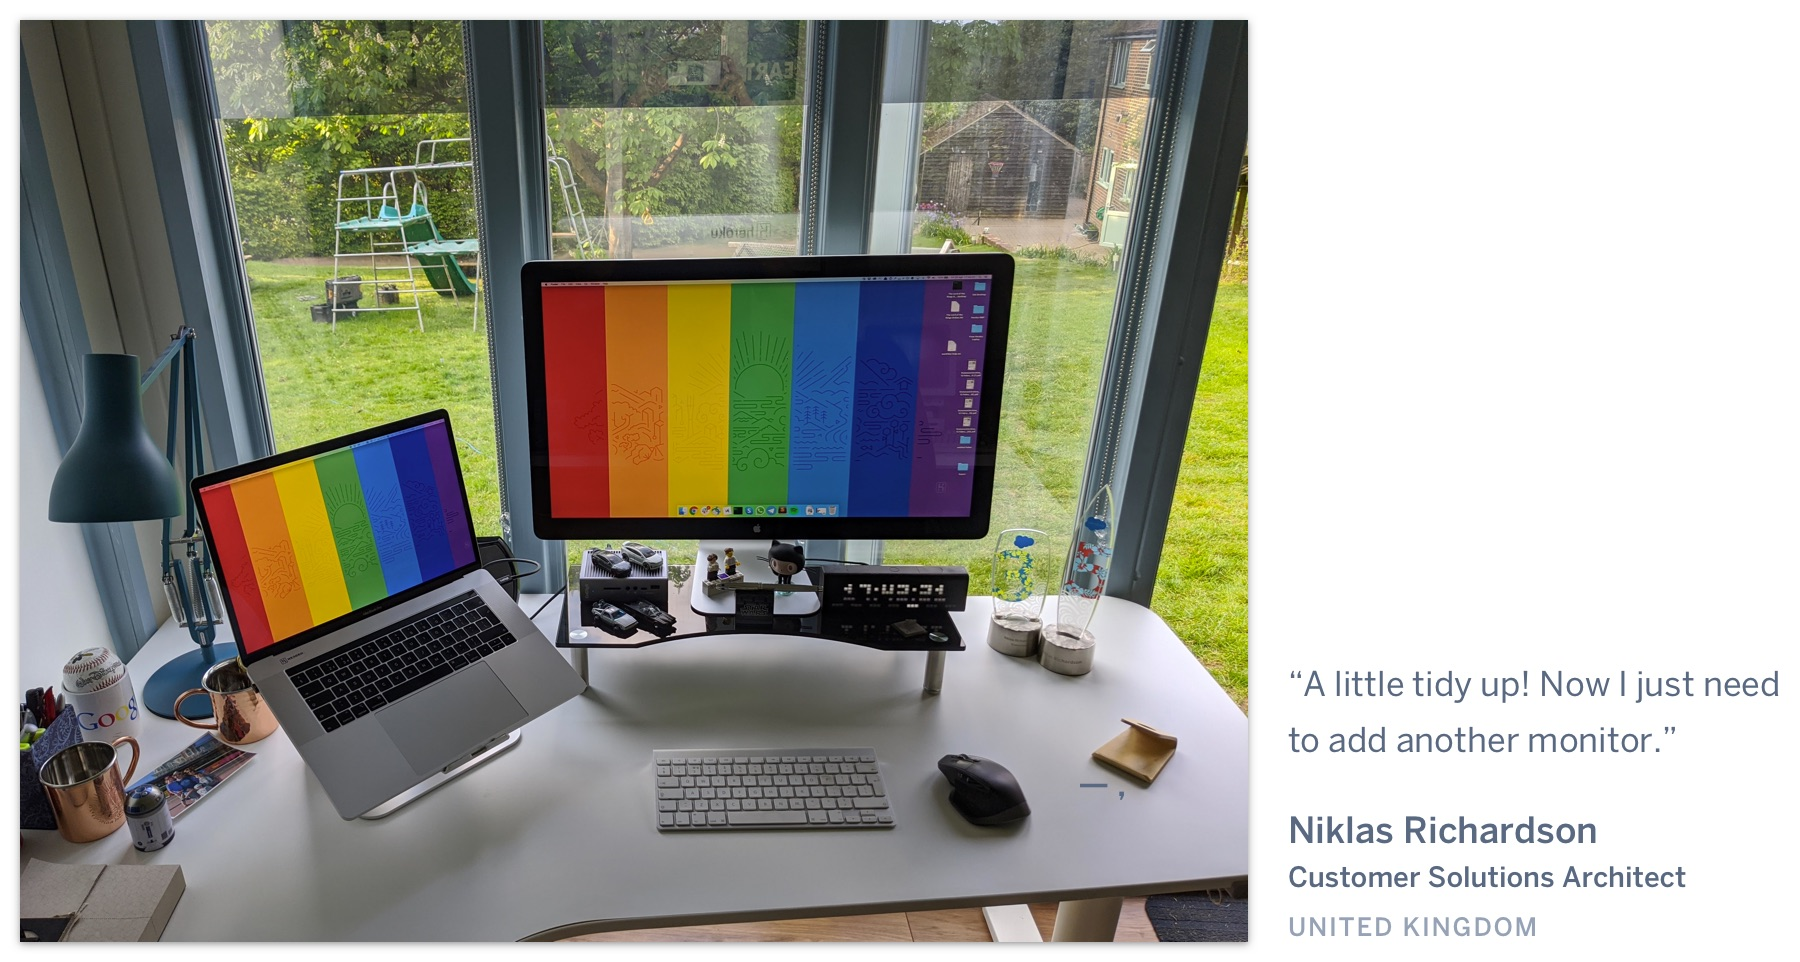 "A computer on a desk with a pride wallpaper, in a shed with a view of a grassy backyard. ""A little tidy up! Now I just need to add another monitor."" Niklas Richardson, Customer Solutions Architect, United Kingdom."